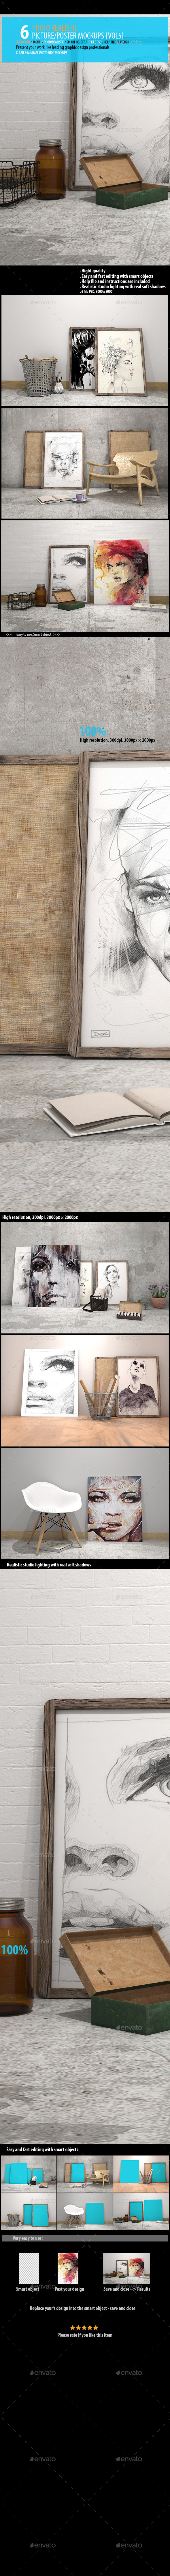 GraphicRiver Picture Poster Mockups [vol 5] 10877493